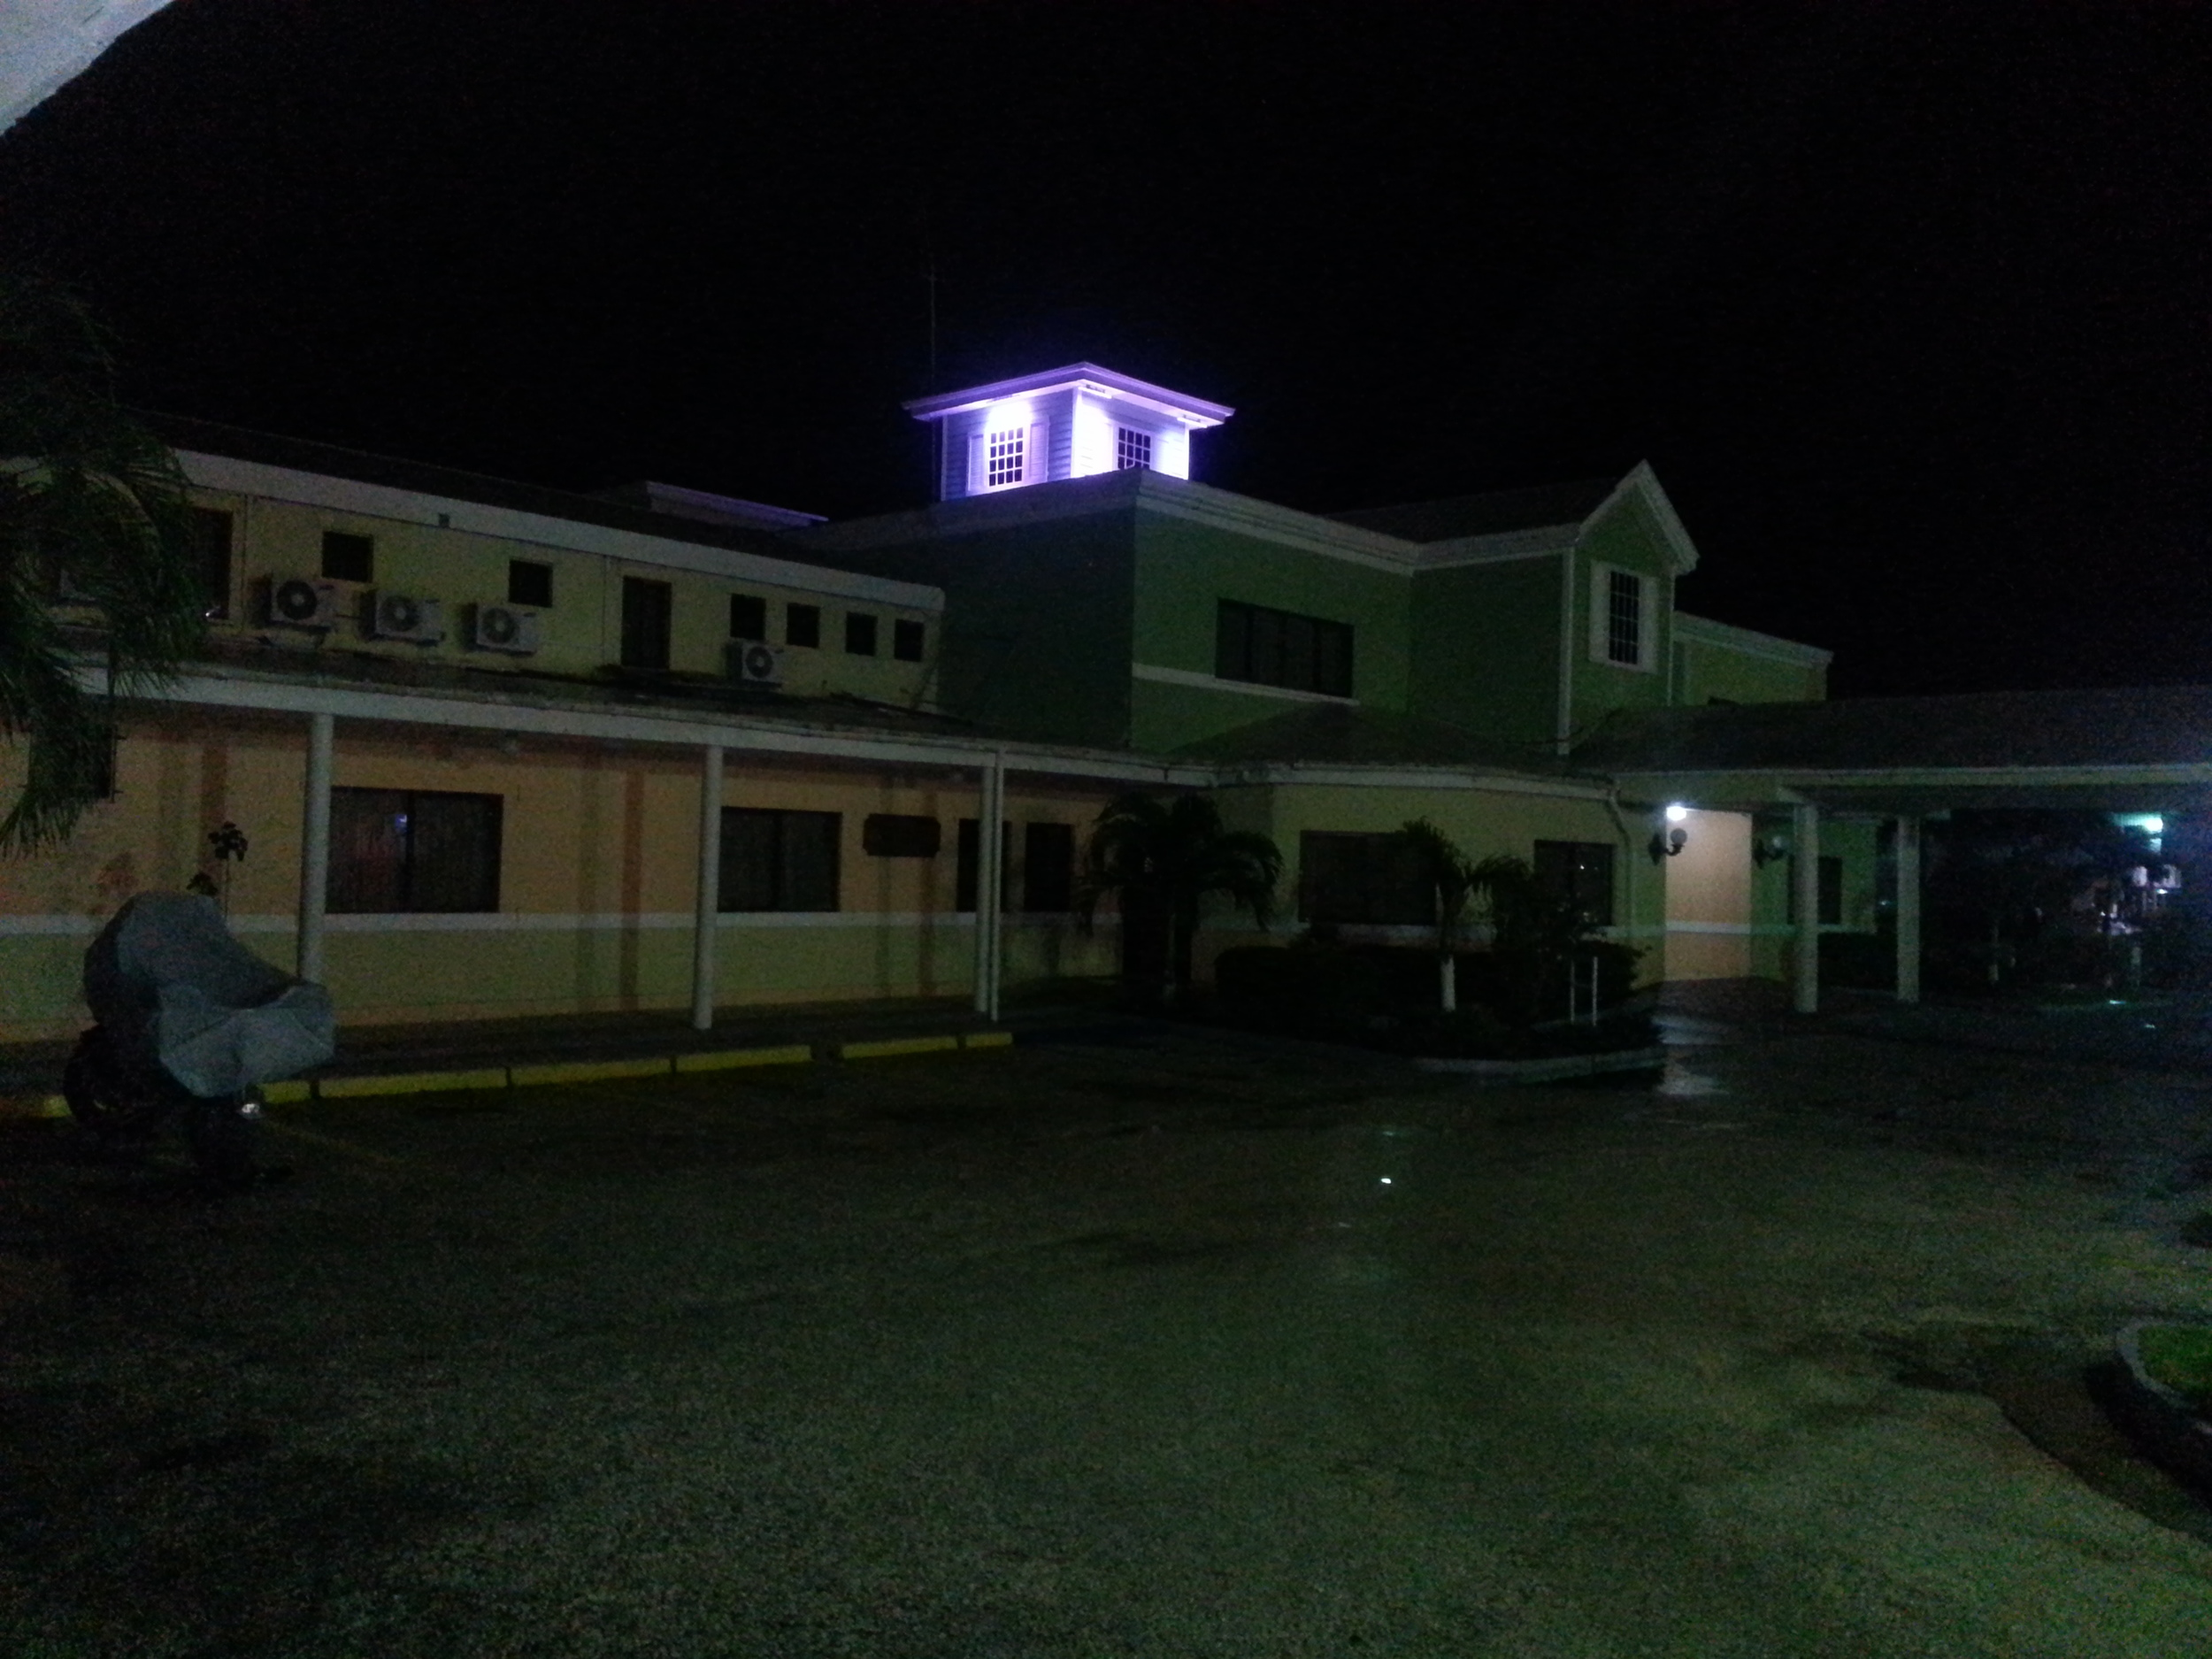 Raining again...at the Best Western Belize City.